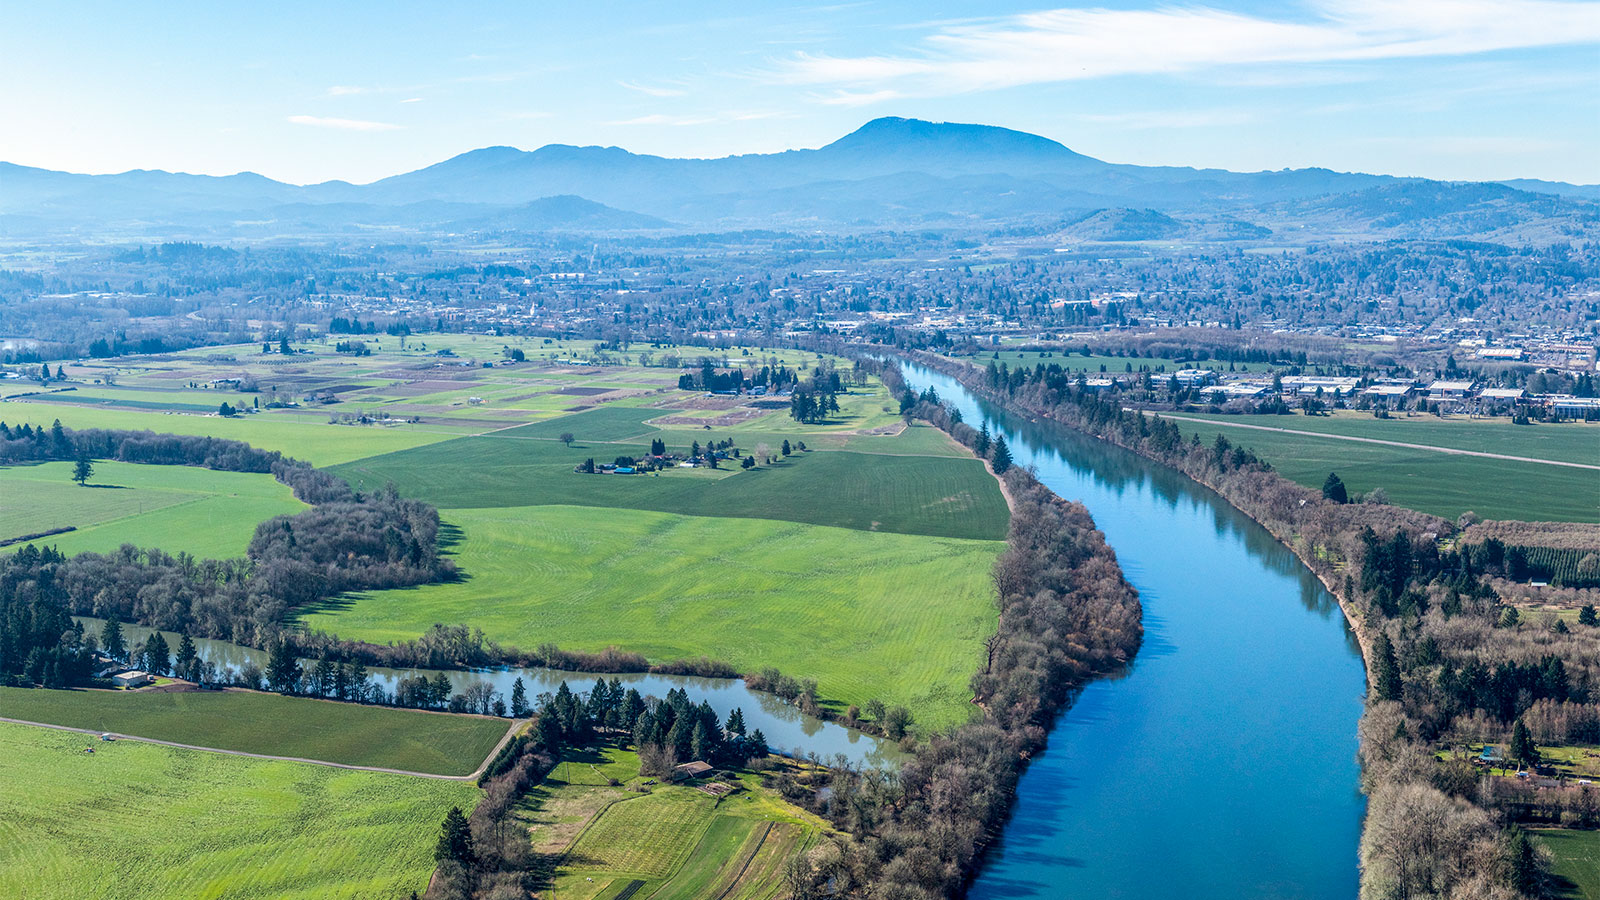 An aerial view of the Willamette Valley in Oregon.